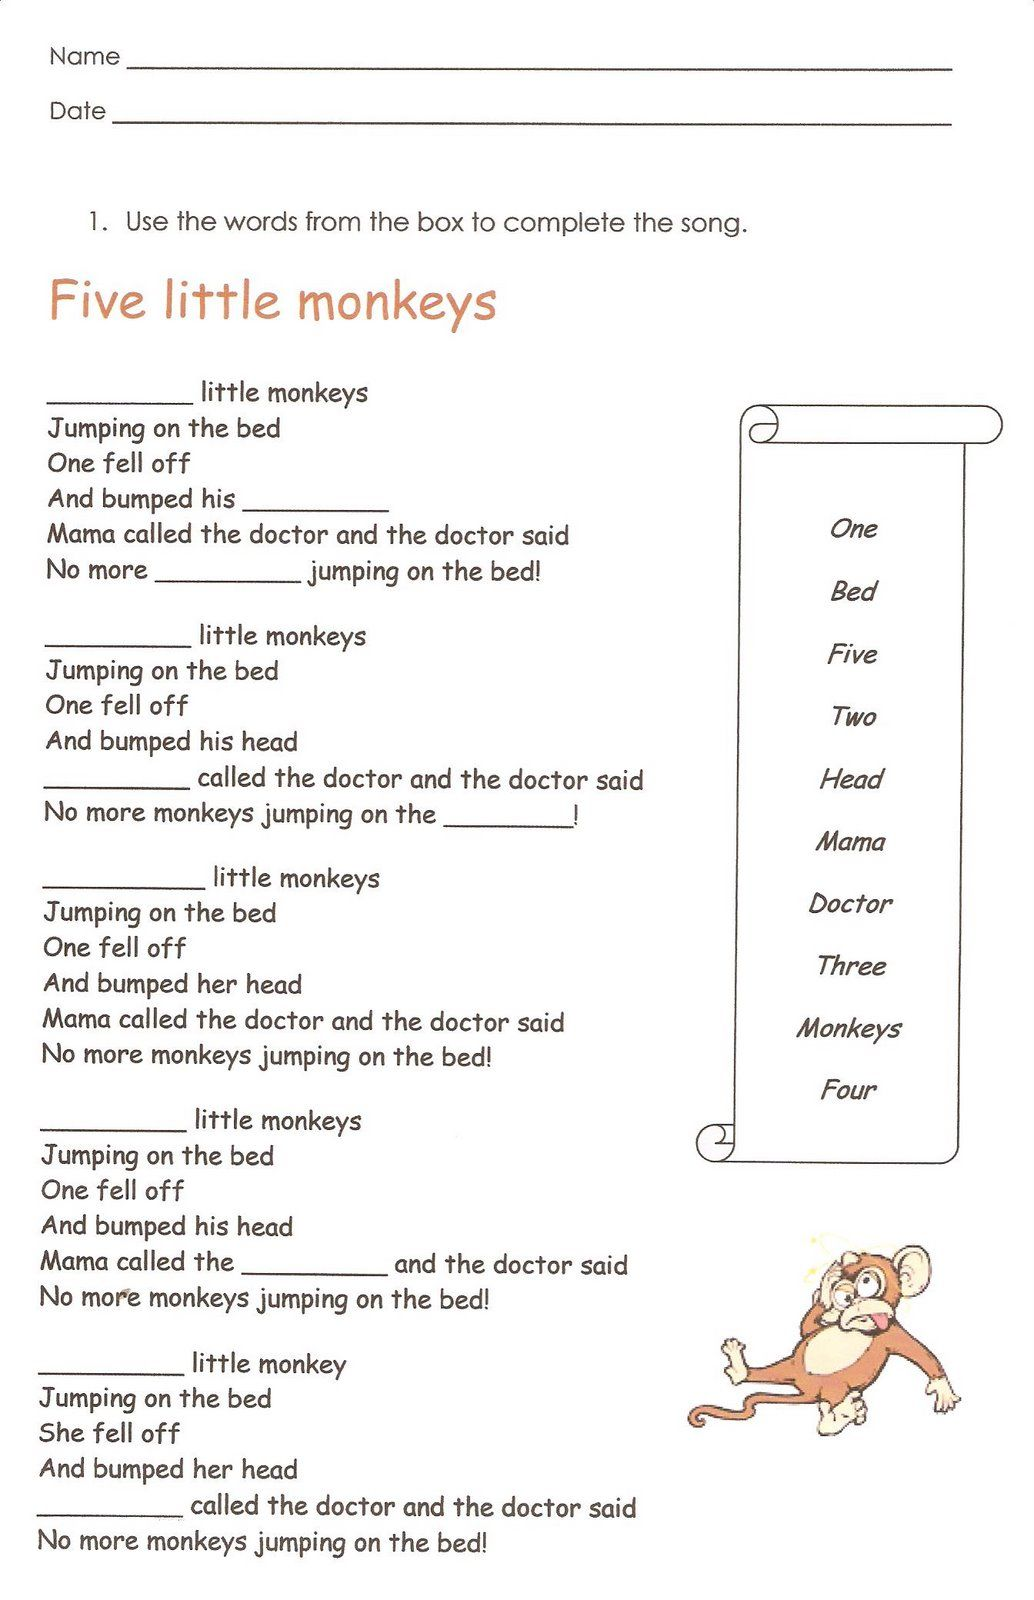 Workbooks reflexive pronoun worksheets for 2nd grade : reading worksheets | ... 1st grade math worksheets 2th grade math ...